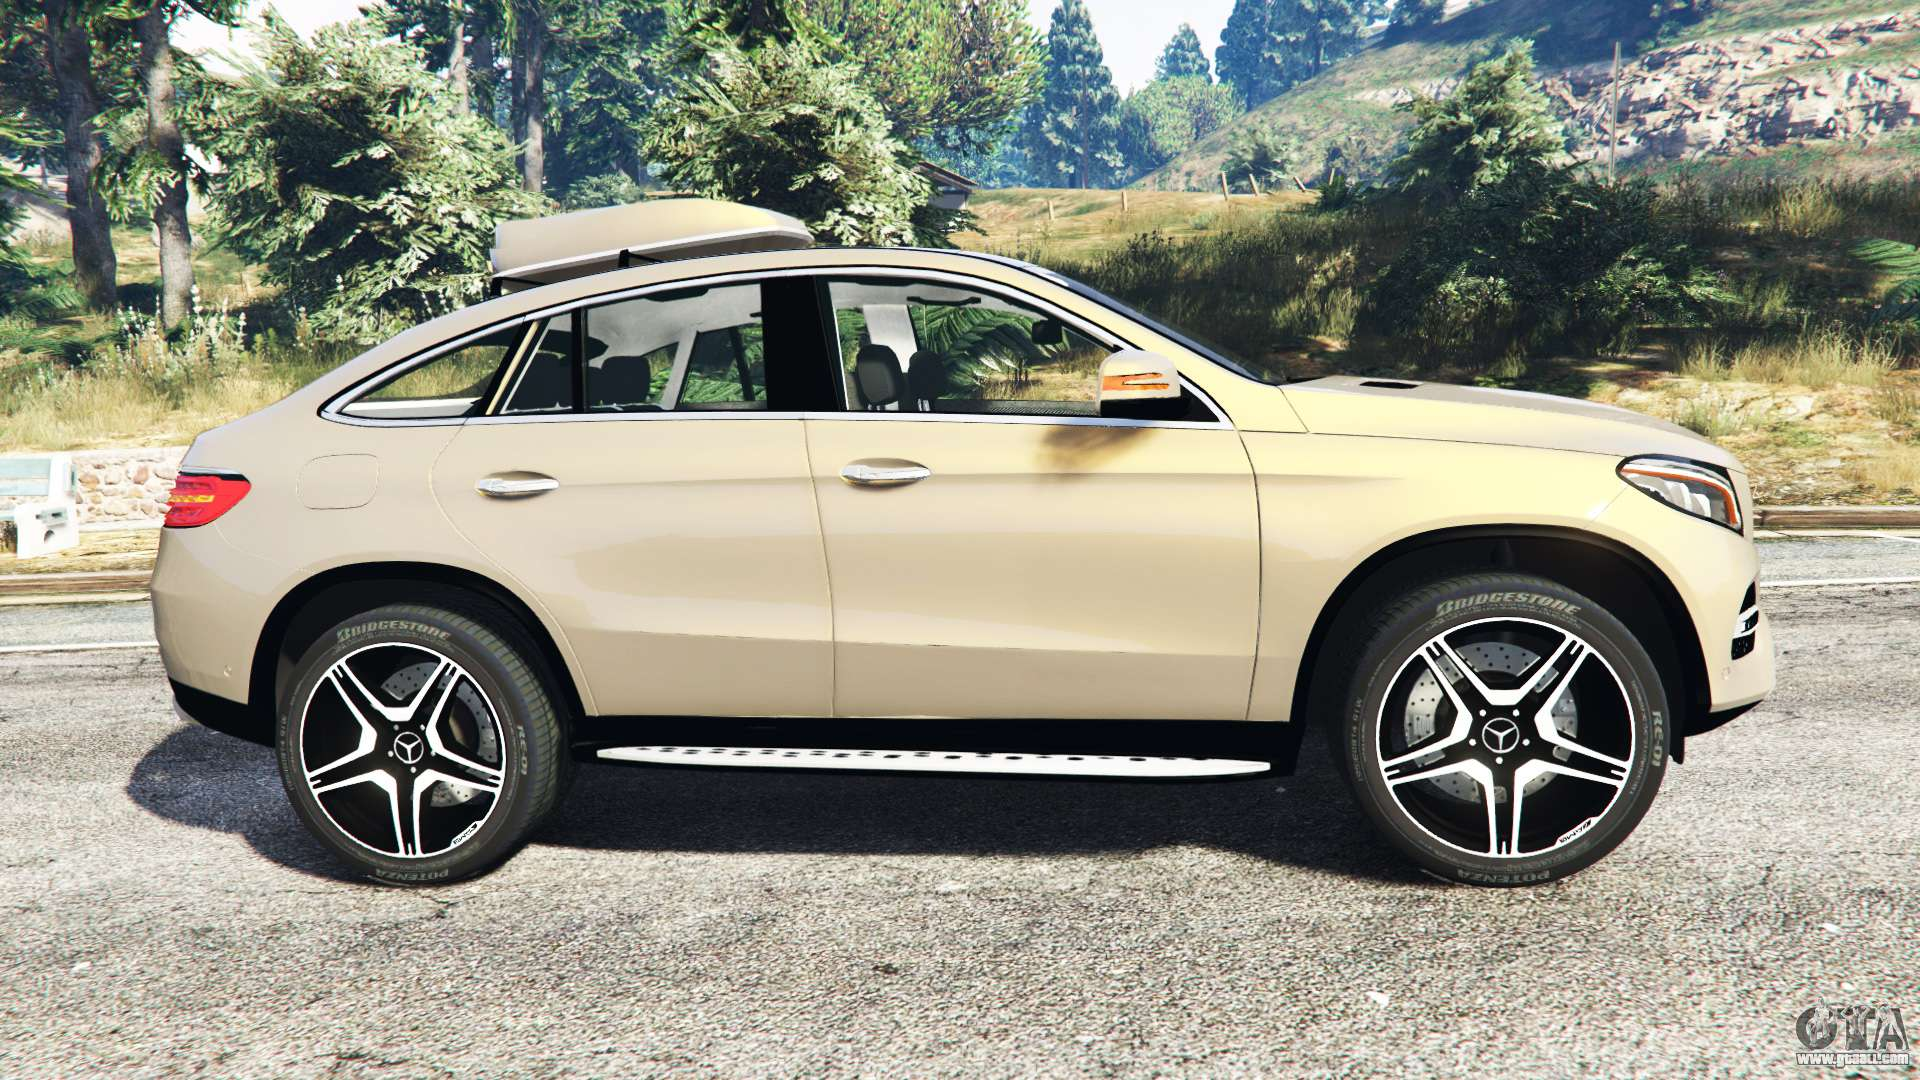 Mercedes benz gle 450 amg 4matic c292 add on for gta 5 for Mercedes benz 450